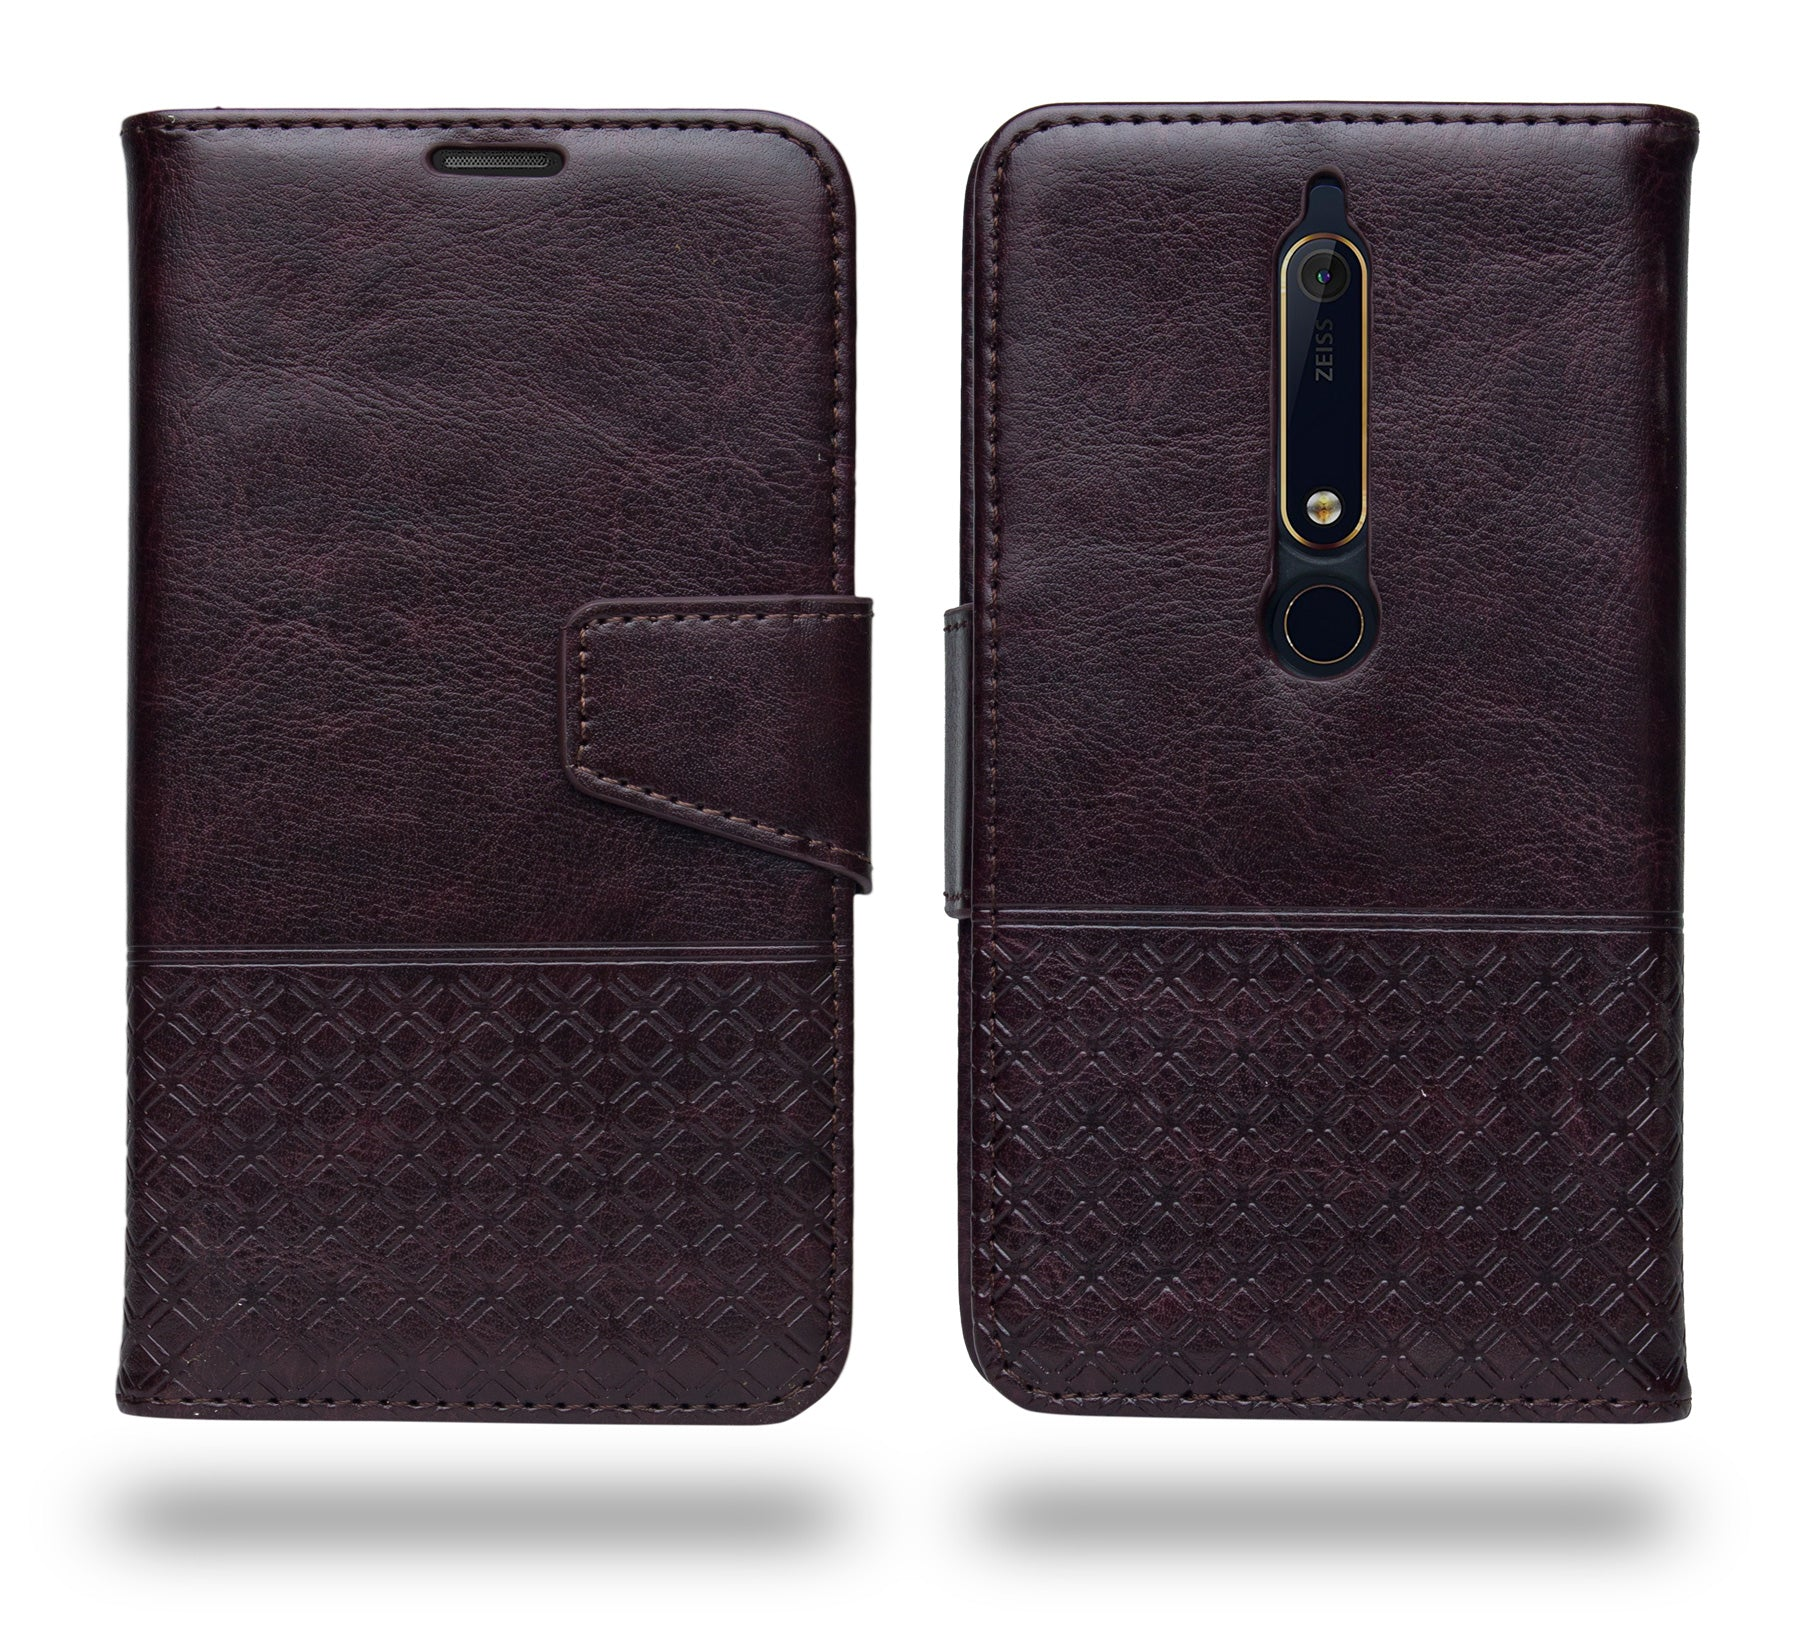 Ceego Luxuria Flip Cover for Nokia 6.1  / Nokia 6 (2018) - Chestnut Brown